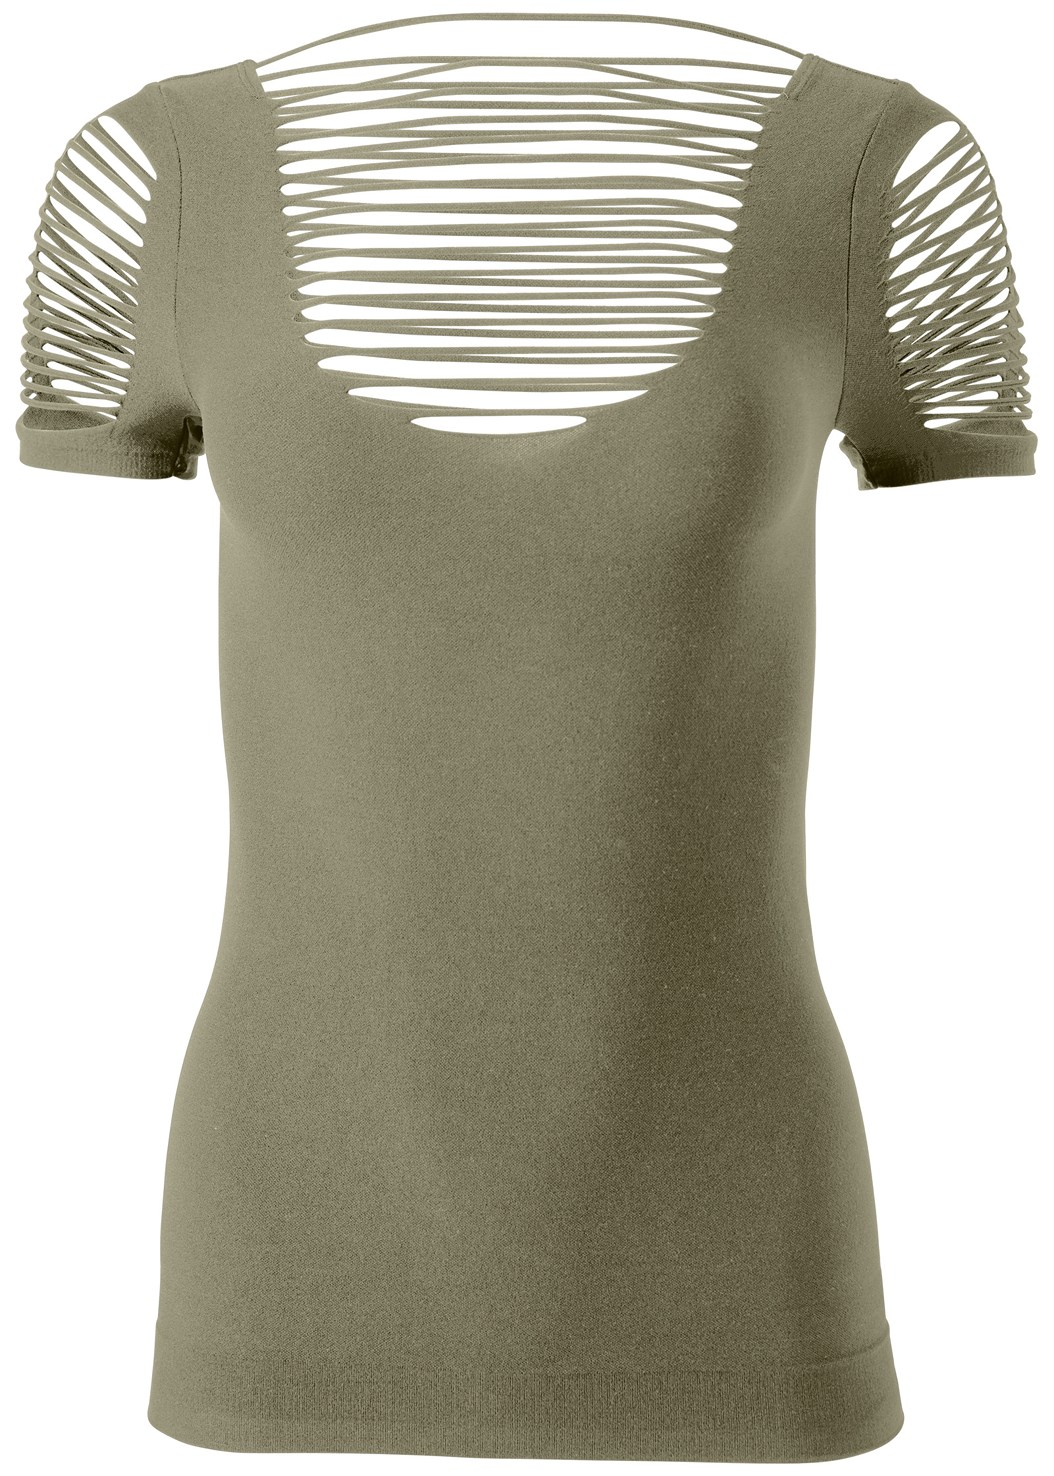 Seamless Cut Out Top,Mid Rise Color Skinny Jeans,Cleavage Enhancers